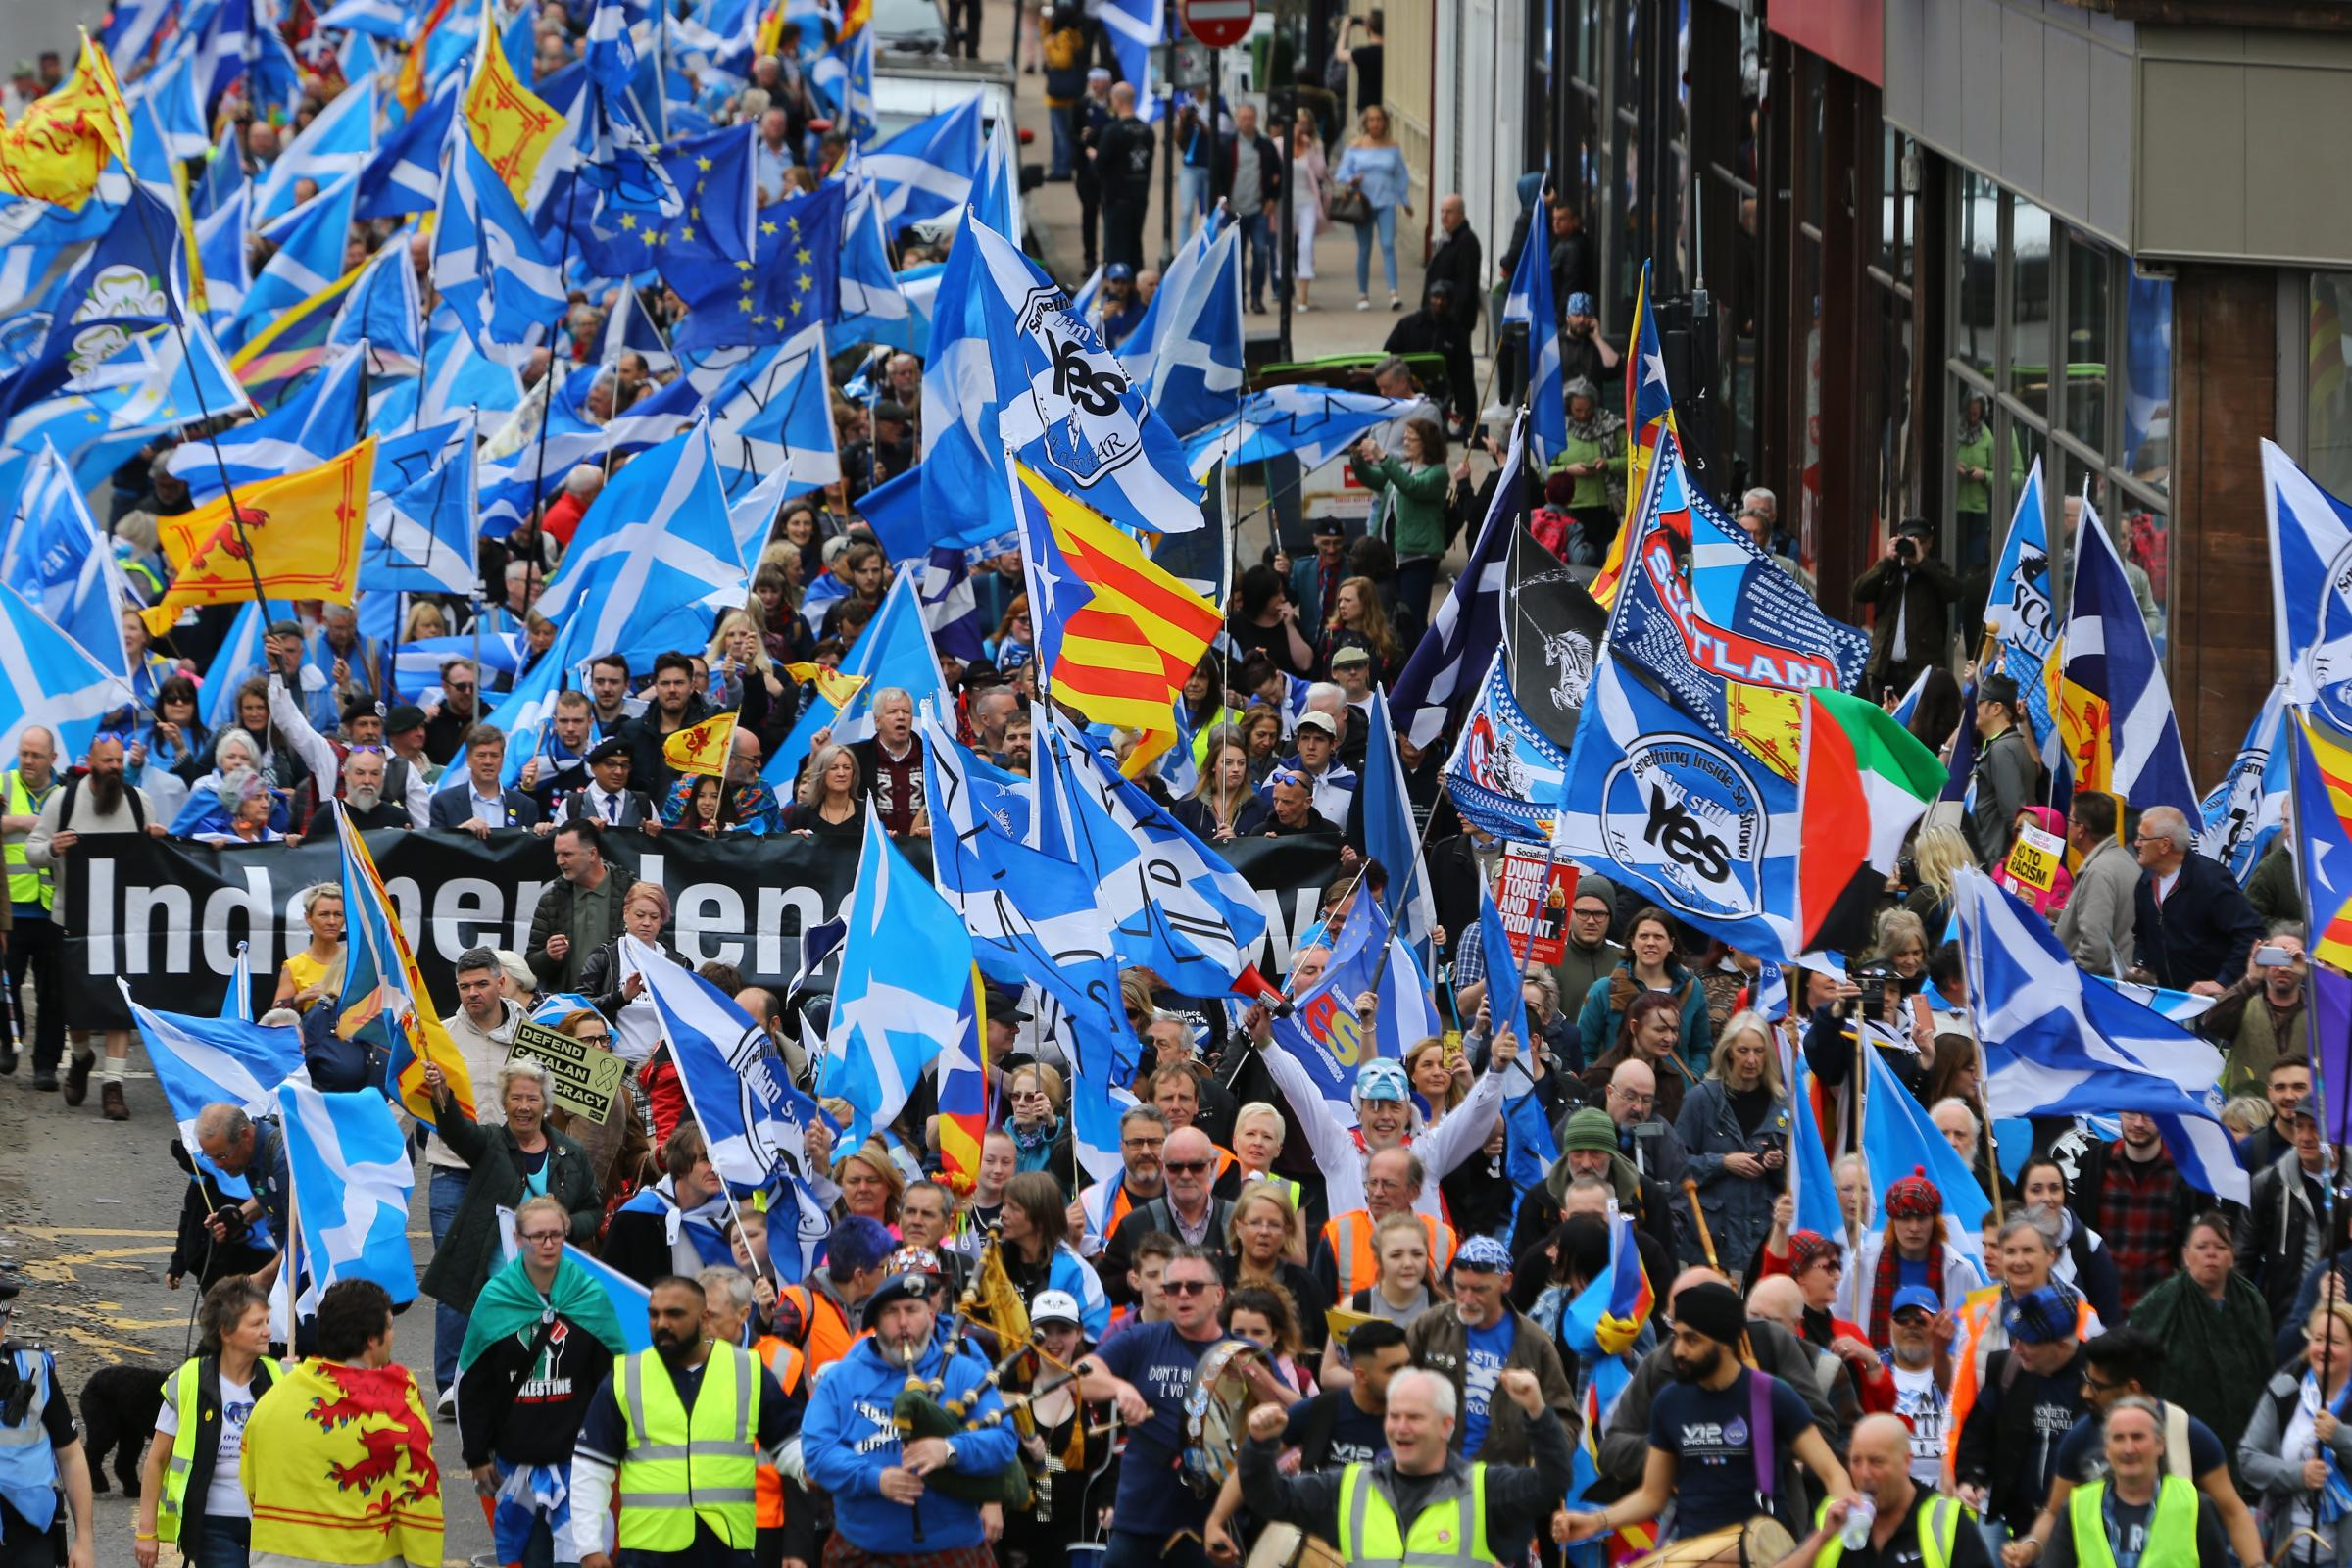 Scottish independence: Unionists launch two-thirds majority bid